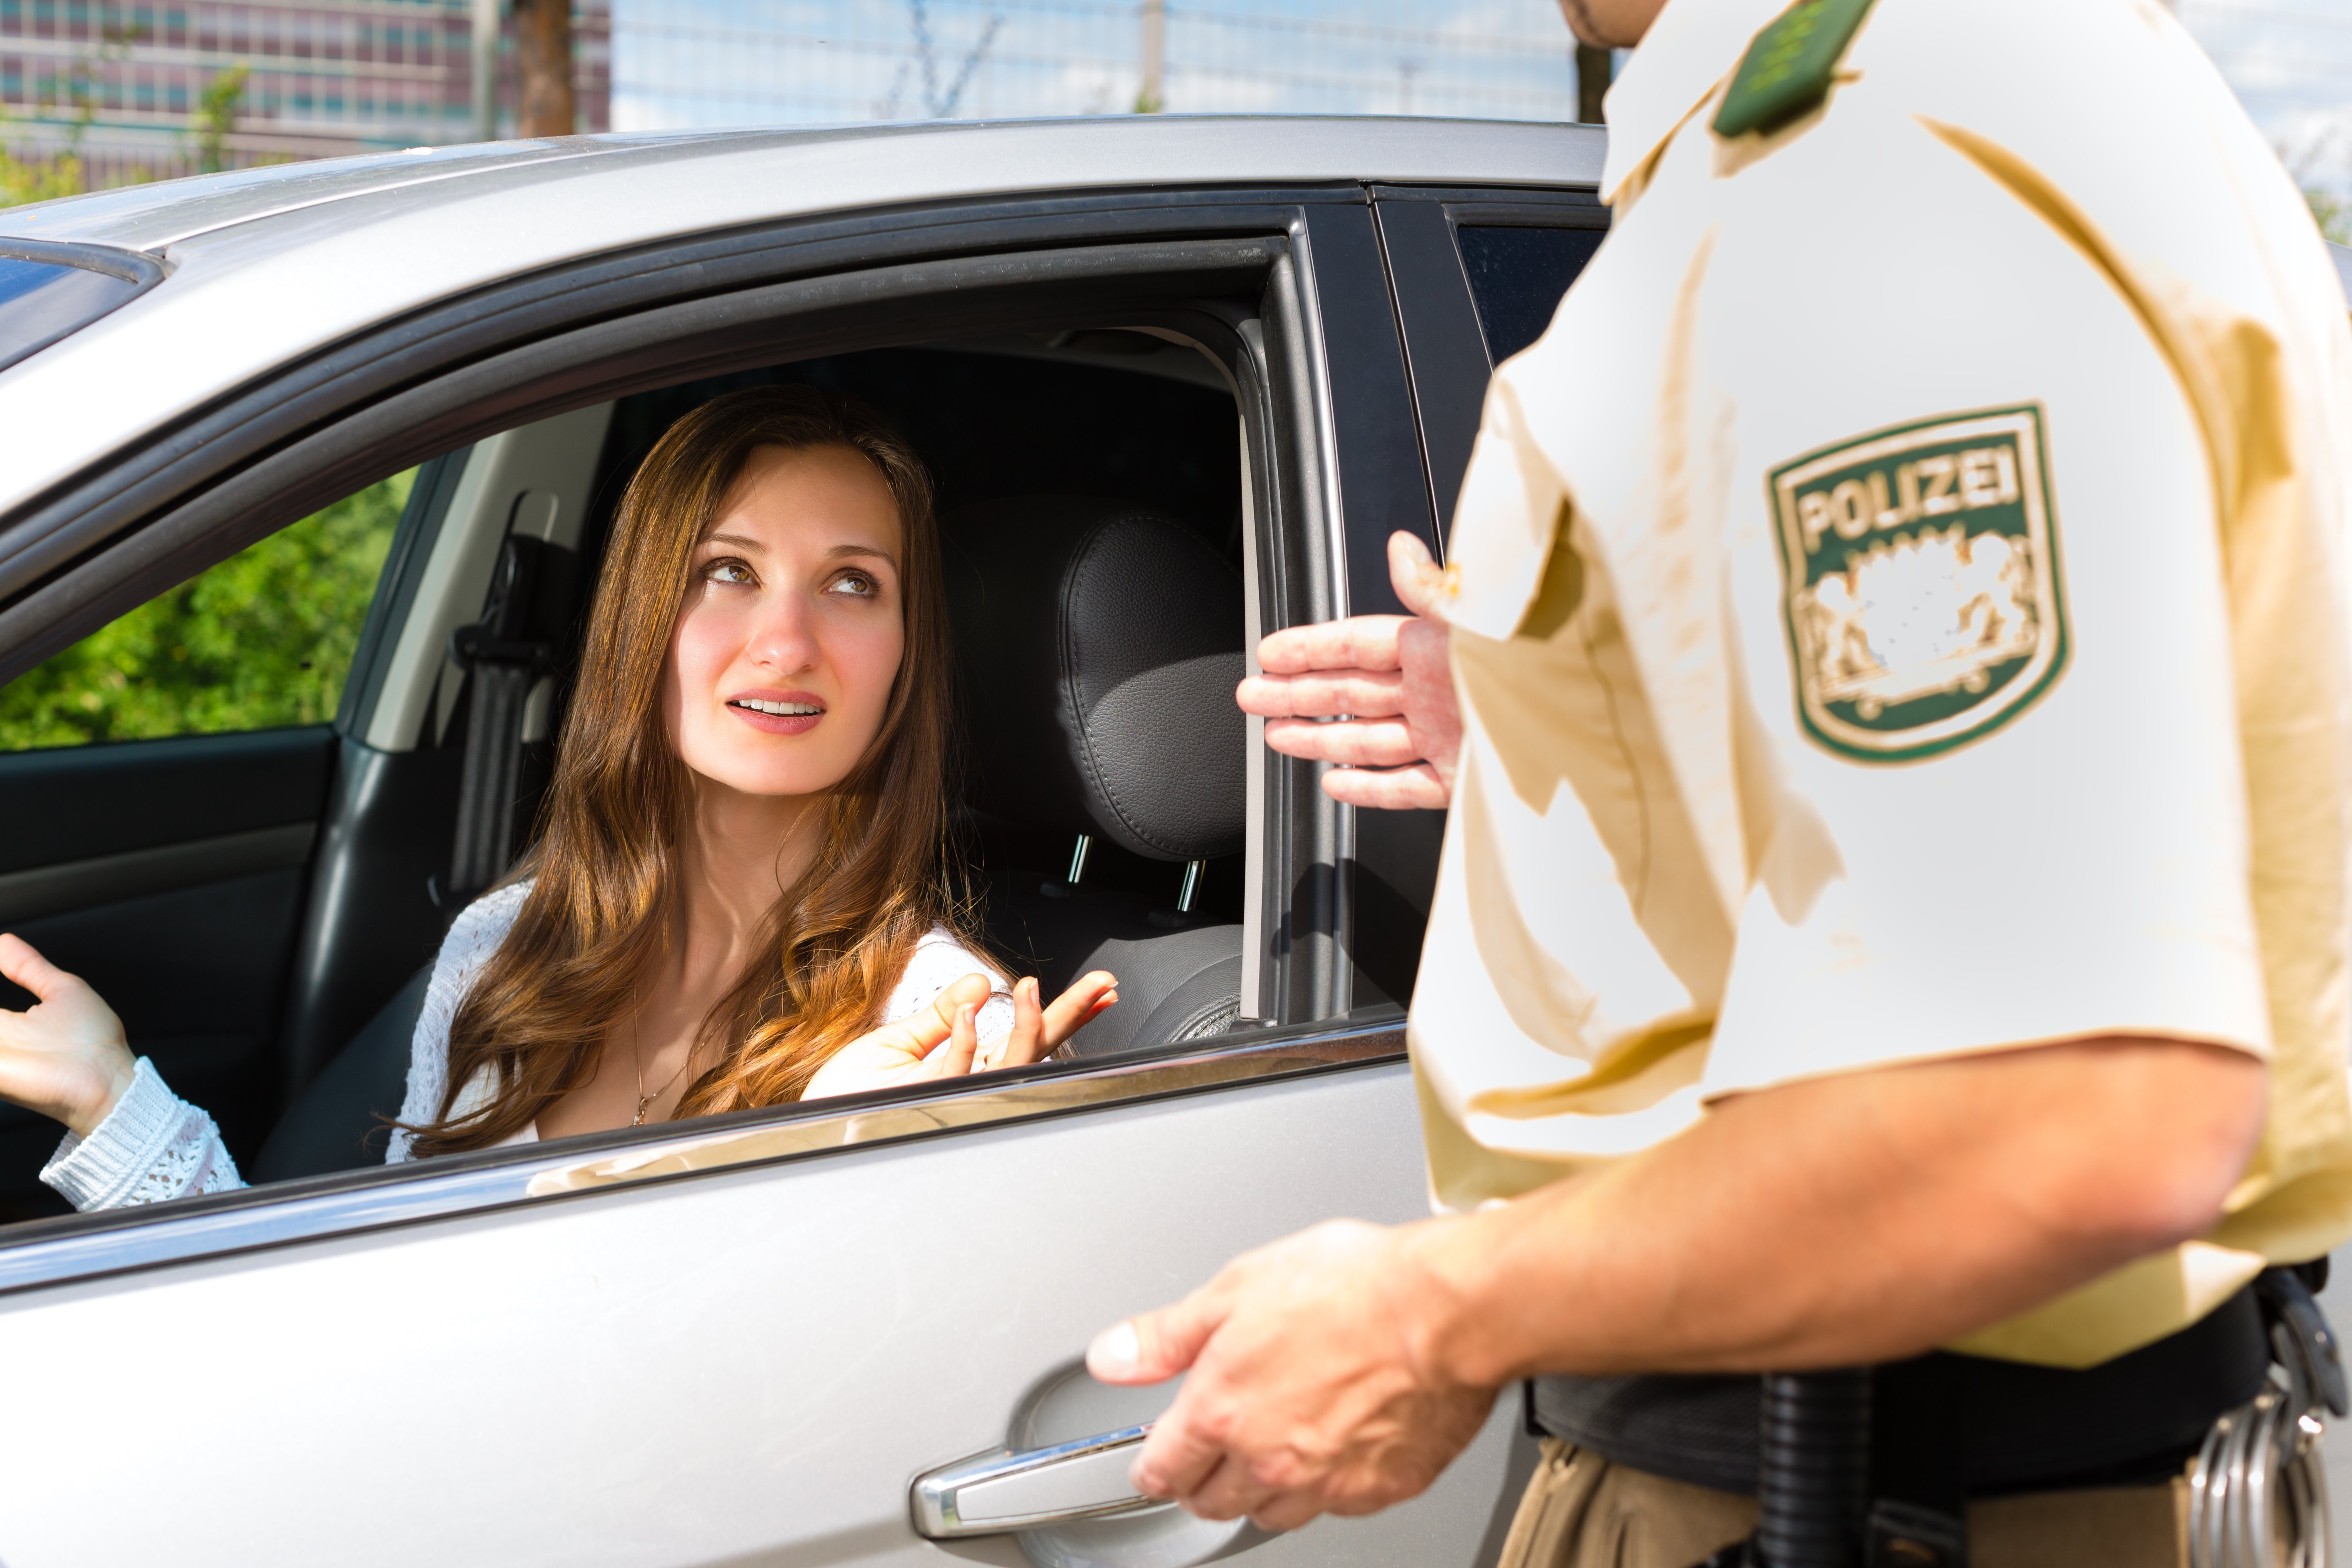 Policeman and a young woman conversing | Photo: Shutterstock.com